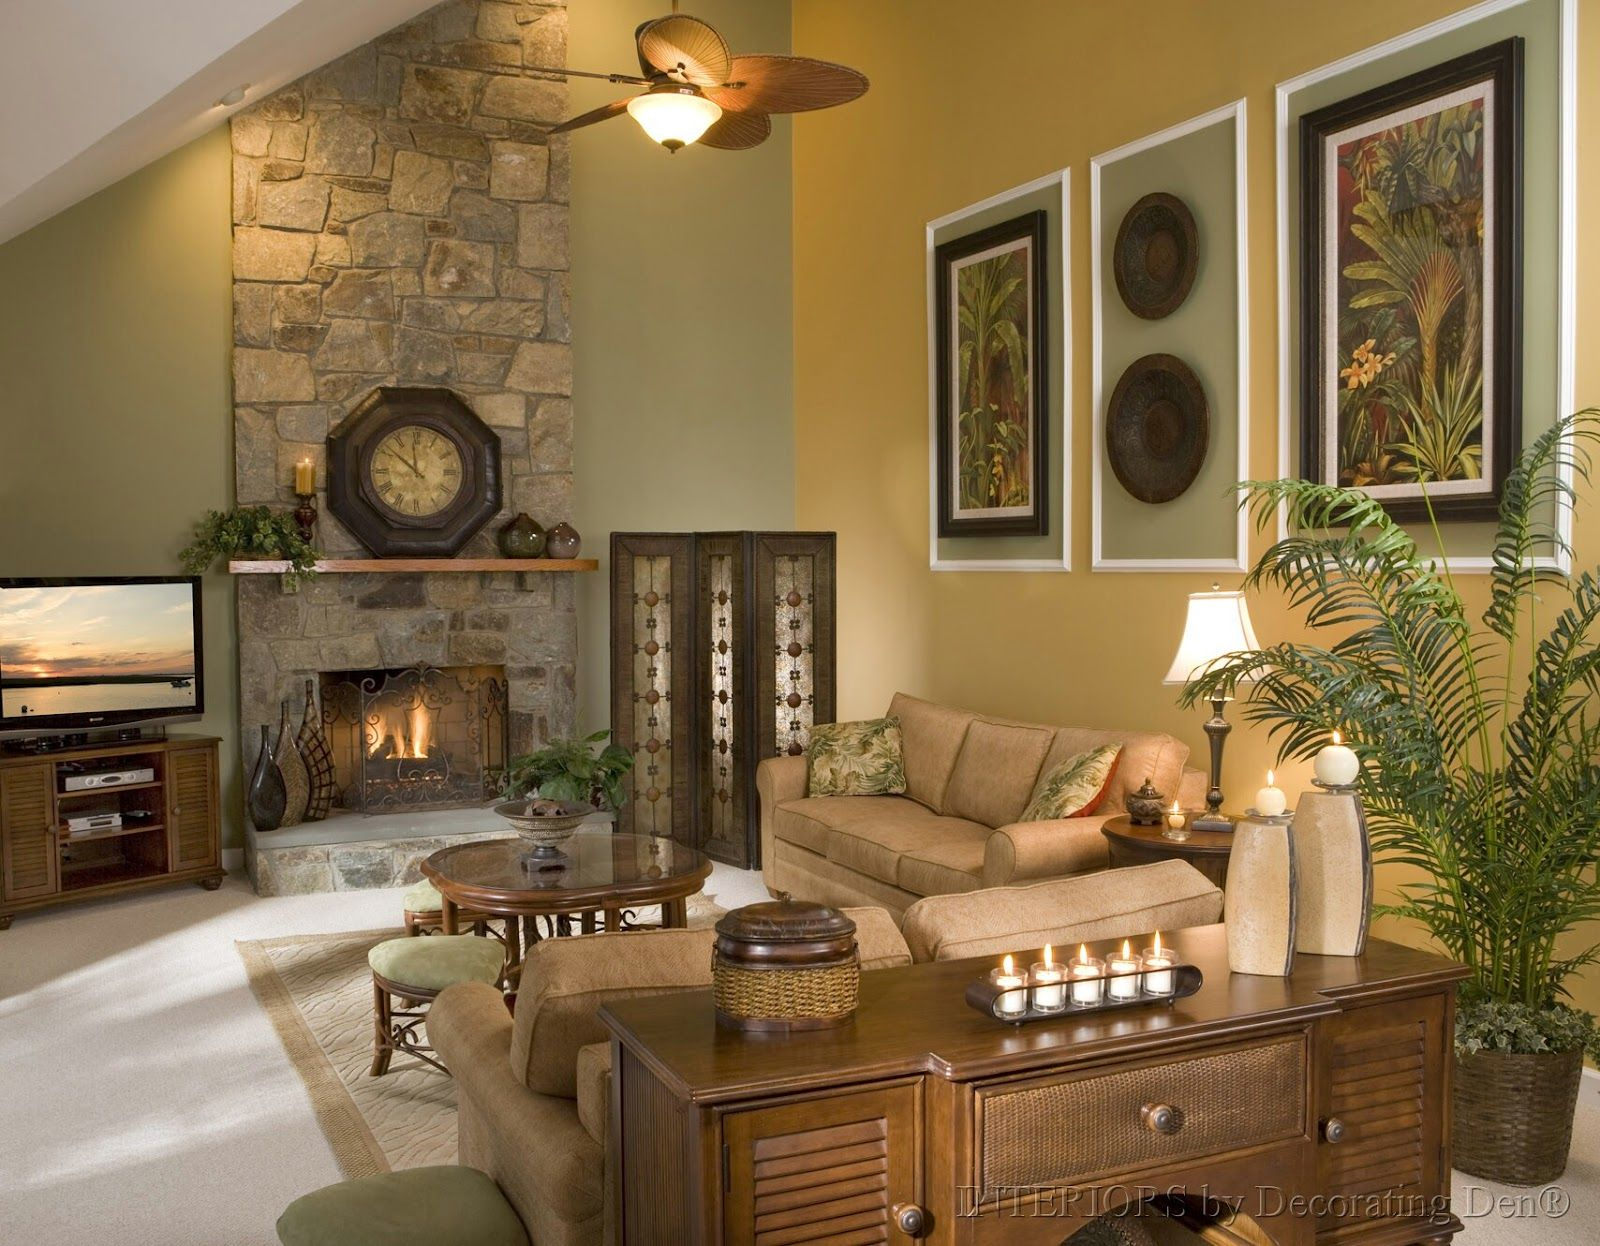 Painting And Decorating - Enhances Look of Your House